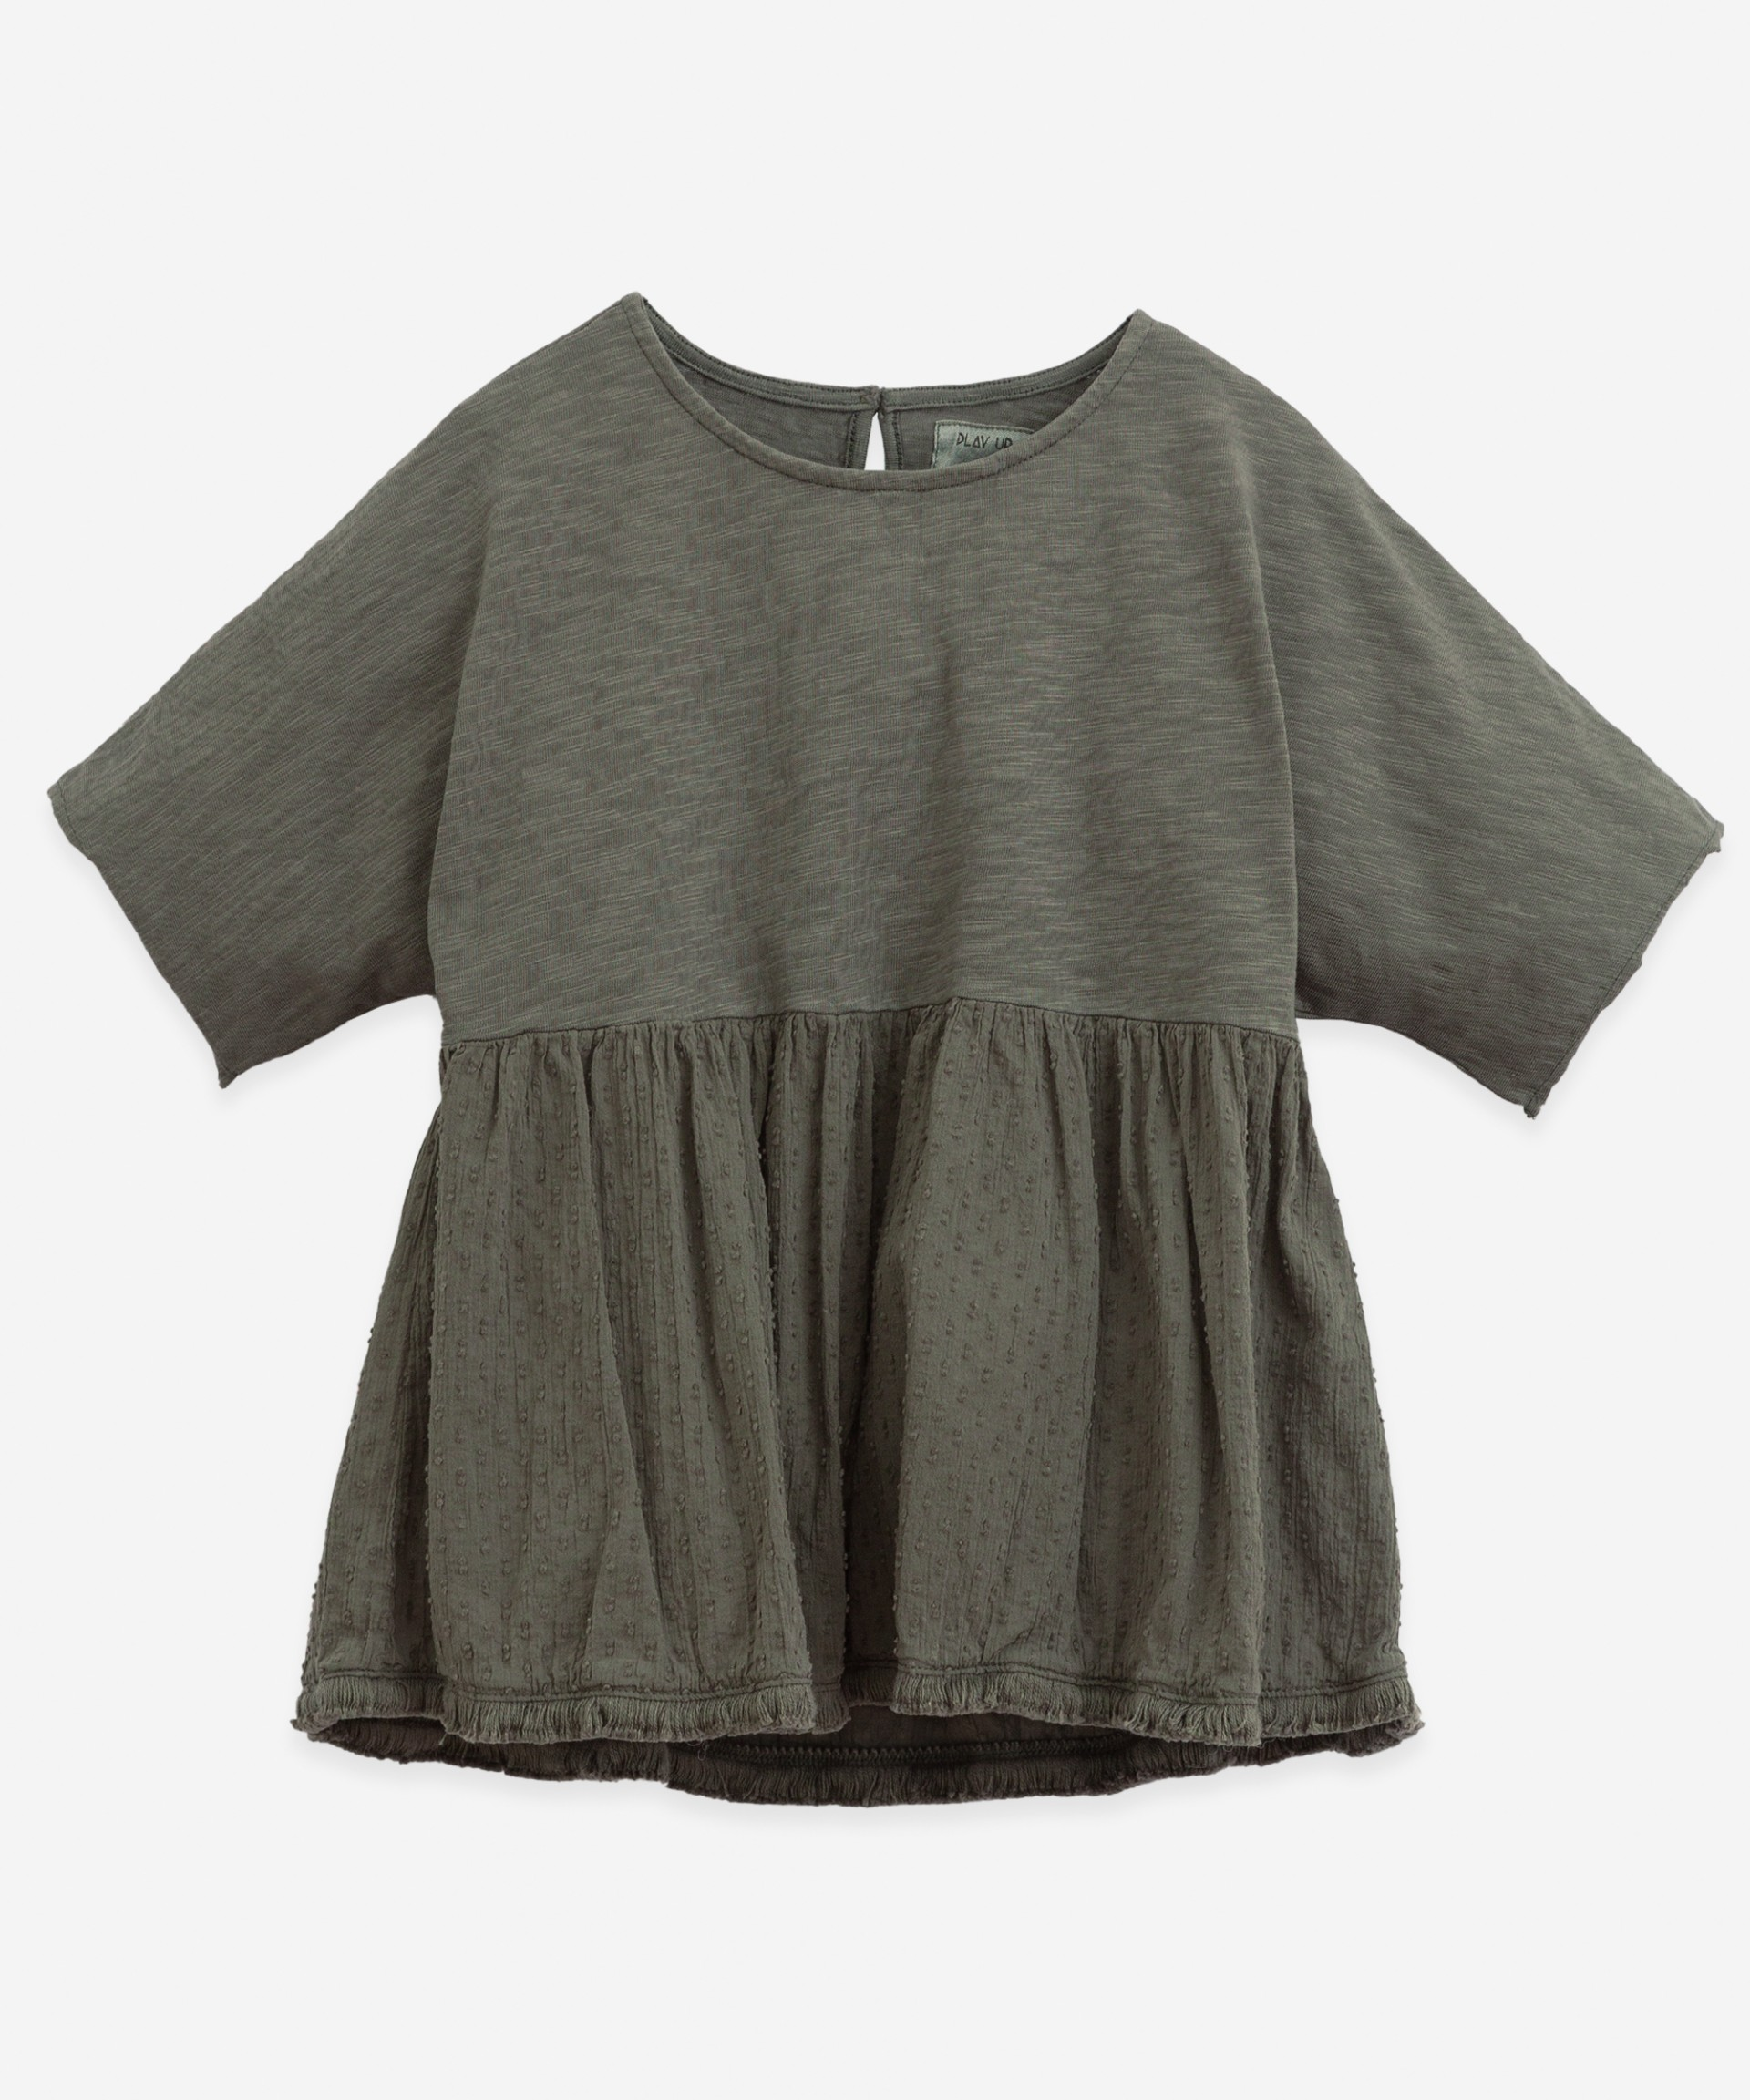 Tunic with coconut buttons | Botany